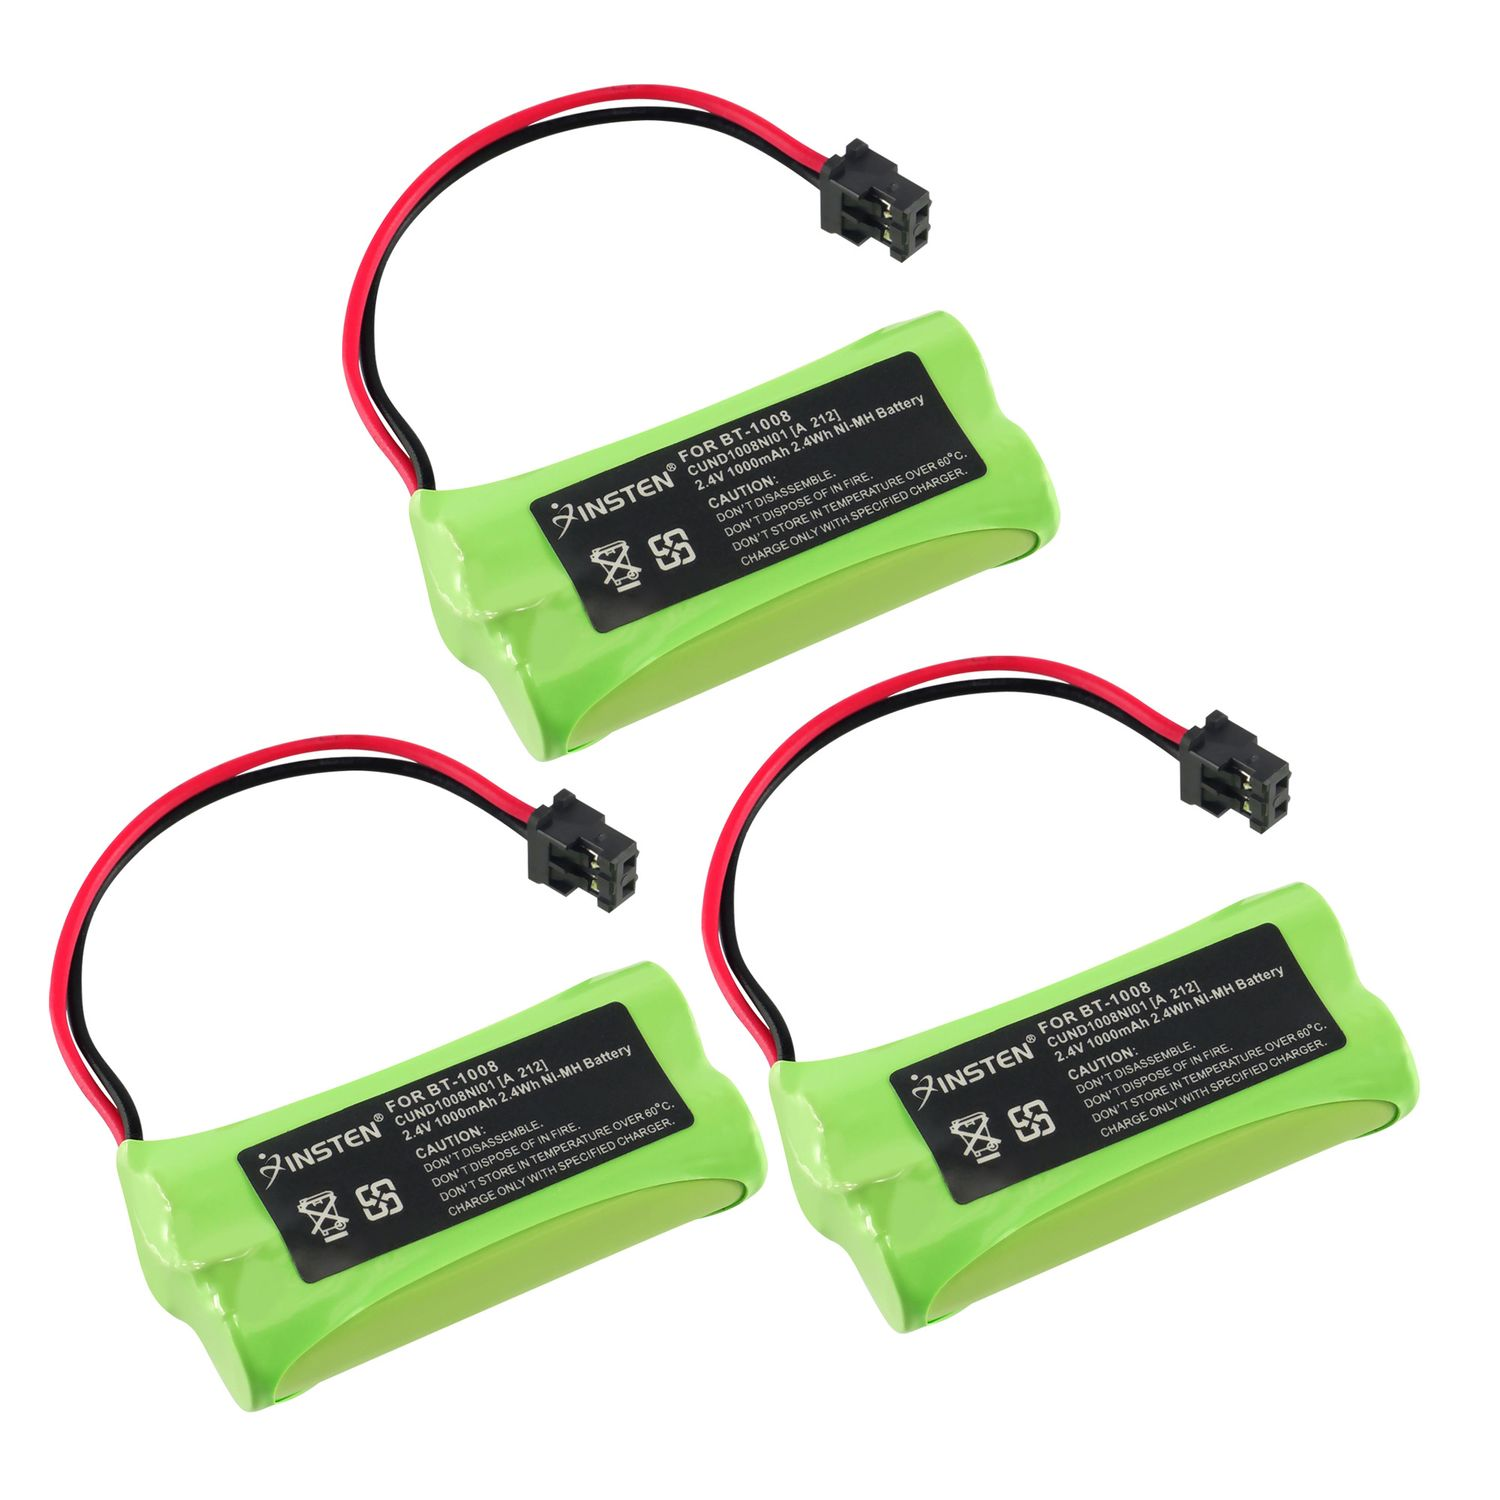 Insten Extra Ni-Mh Cordless Phone Home Battery Power For Uniden BT-1008 Dect 6.0 DECT-2060 65AAAH2BMS WXI-2077 (3 Pack)